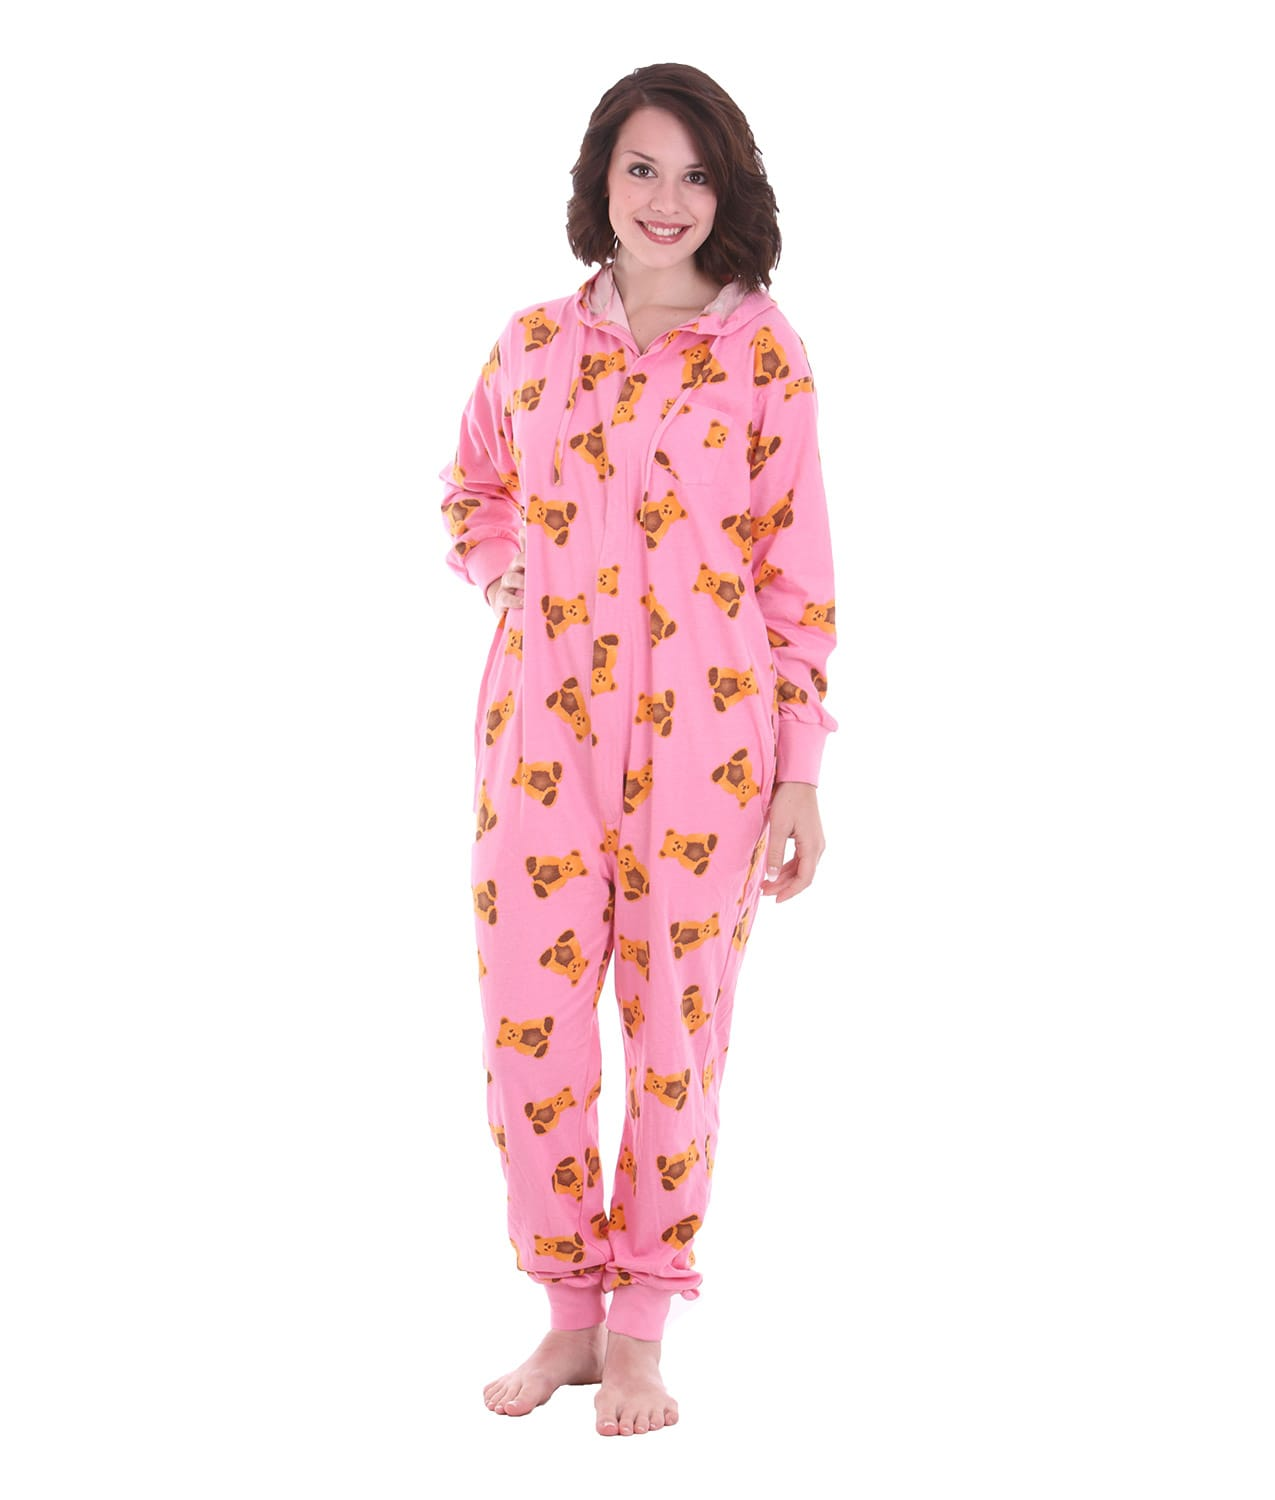 Shop for sleepwear and PJs at ThinkGeek. Lounge in geek style with our selection of pajamas (both shorts and pants), gowns, kigurumi, and union suits. Shop for sleepwear and PJs at ThinkGeek. Lounge in geek style with our selection of pajamas (both shorts and pants), gowns, kigurumi, and union suits.